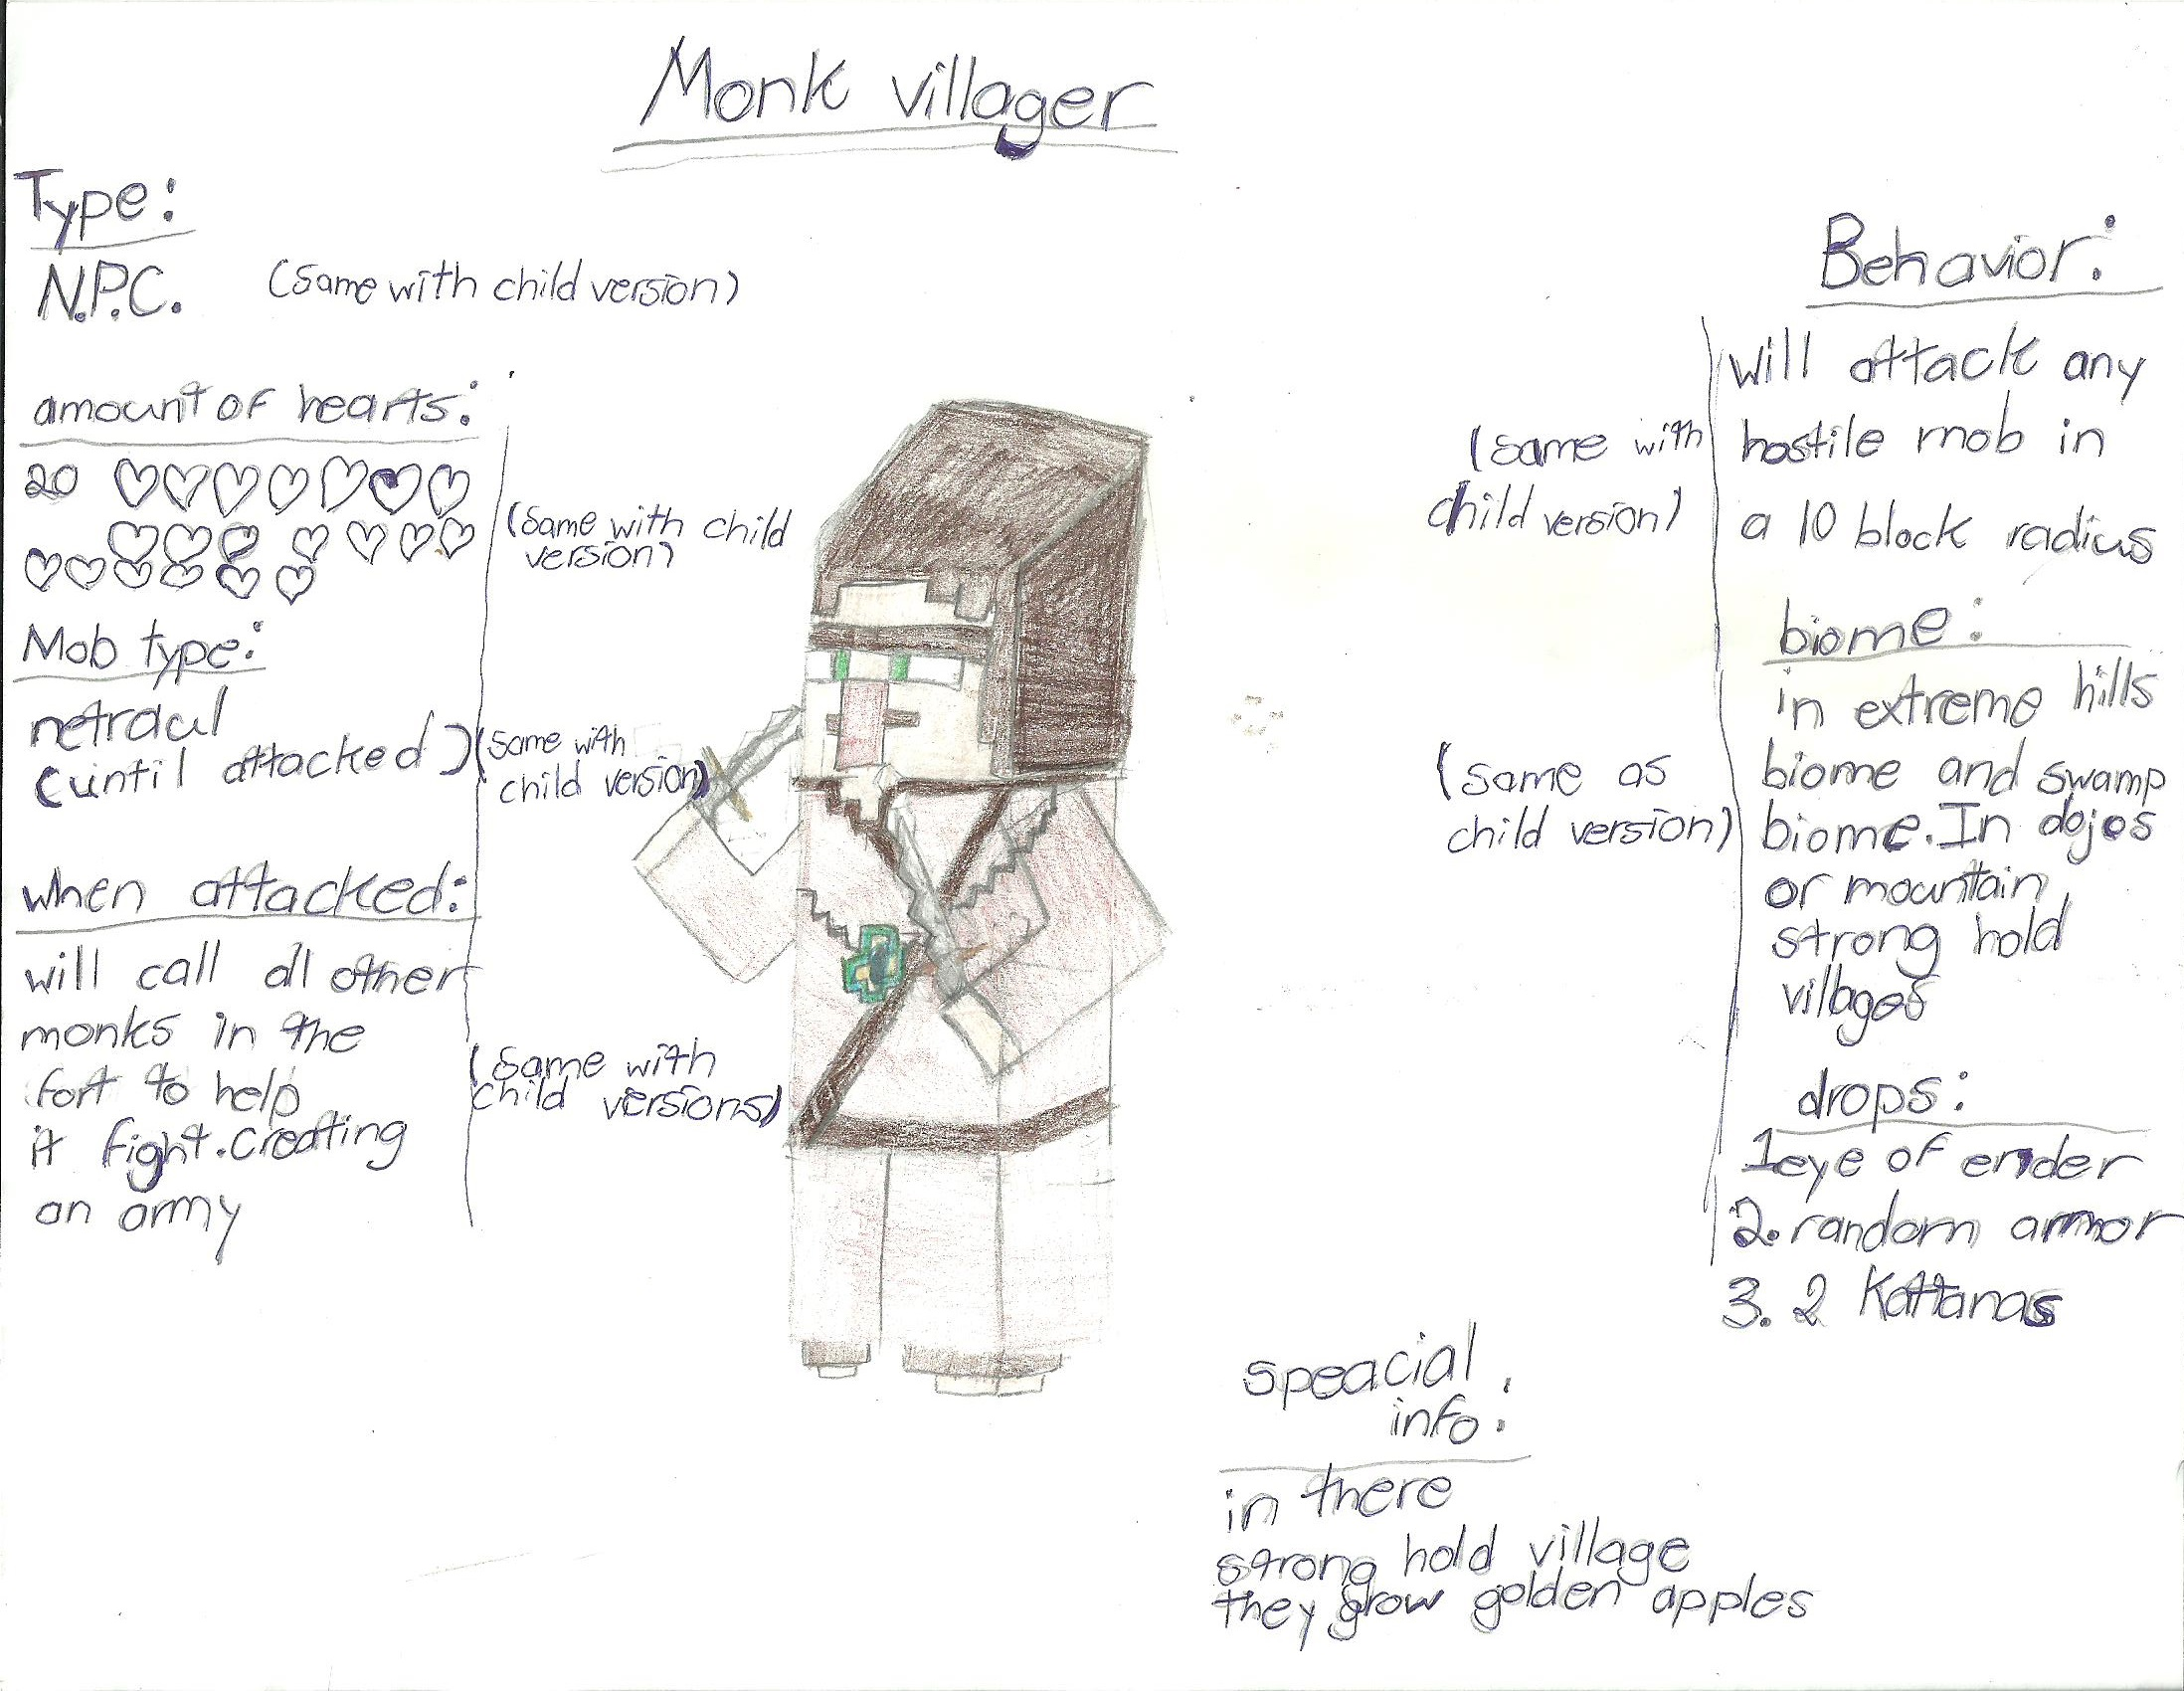 minecraft images monk villager hd wallpaper and background photos